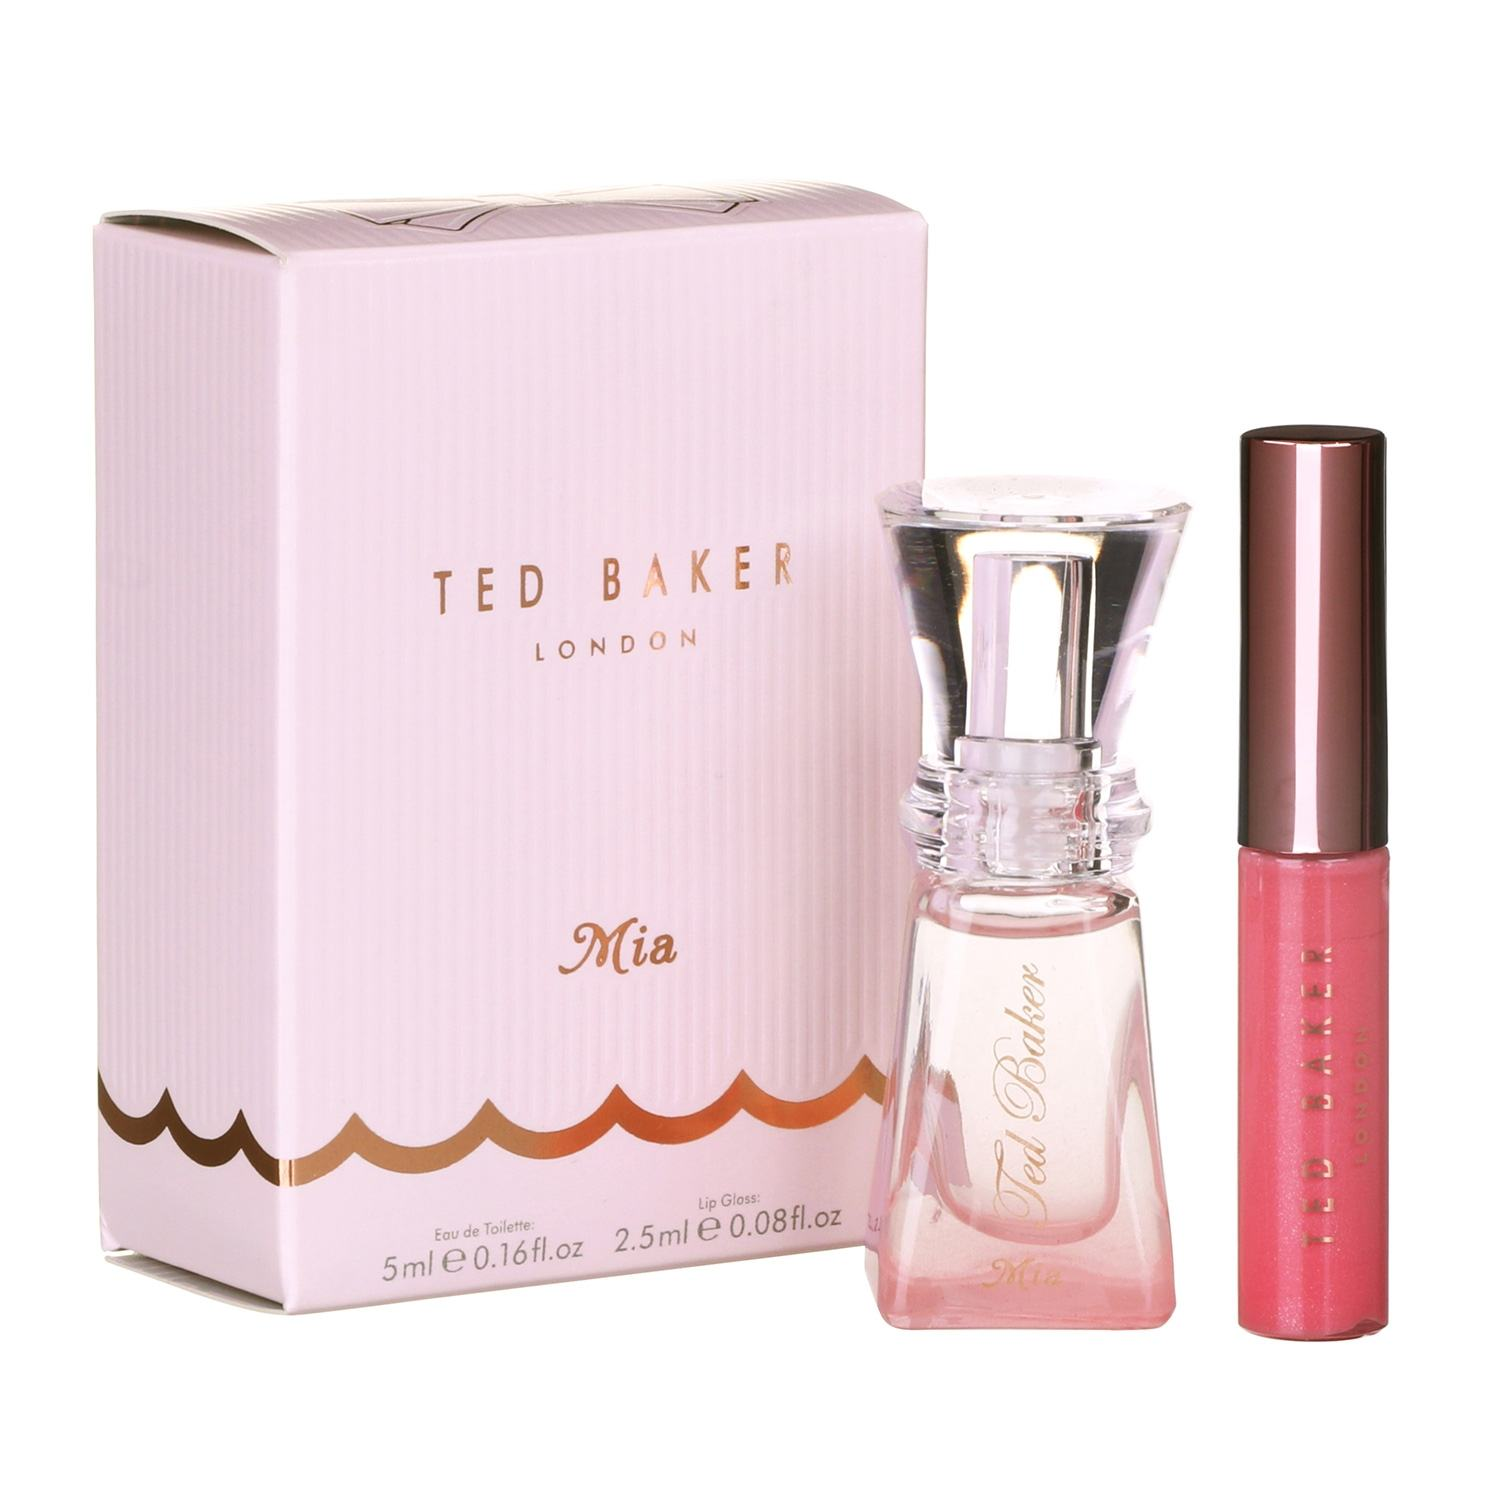 Ted Baker Sweet Things Come In Three Mia Perfume Lip Gloss Temptation Gifts